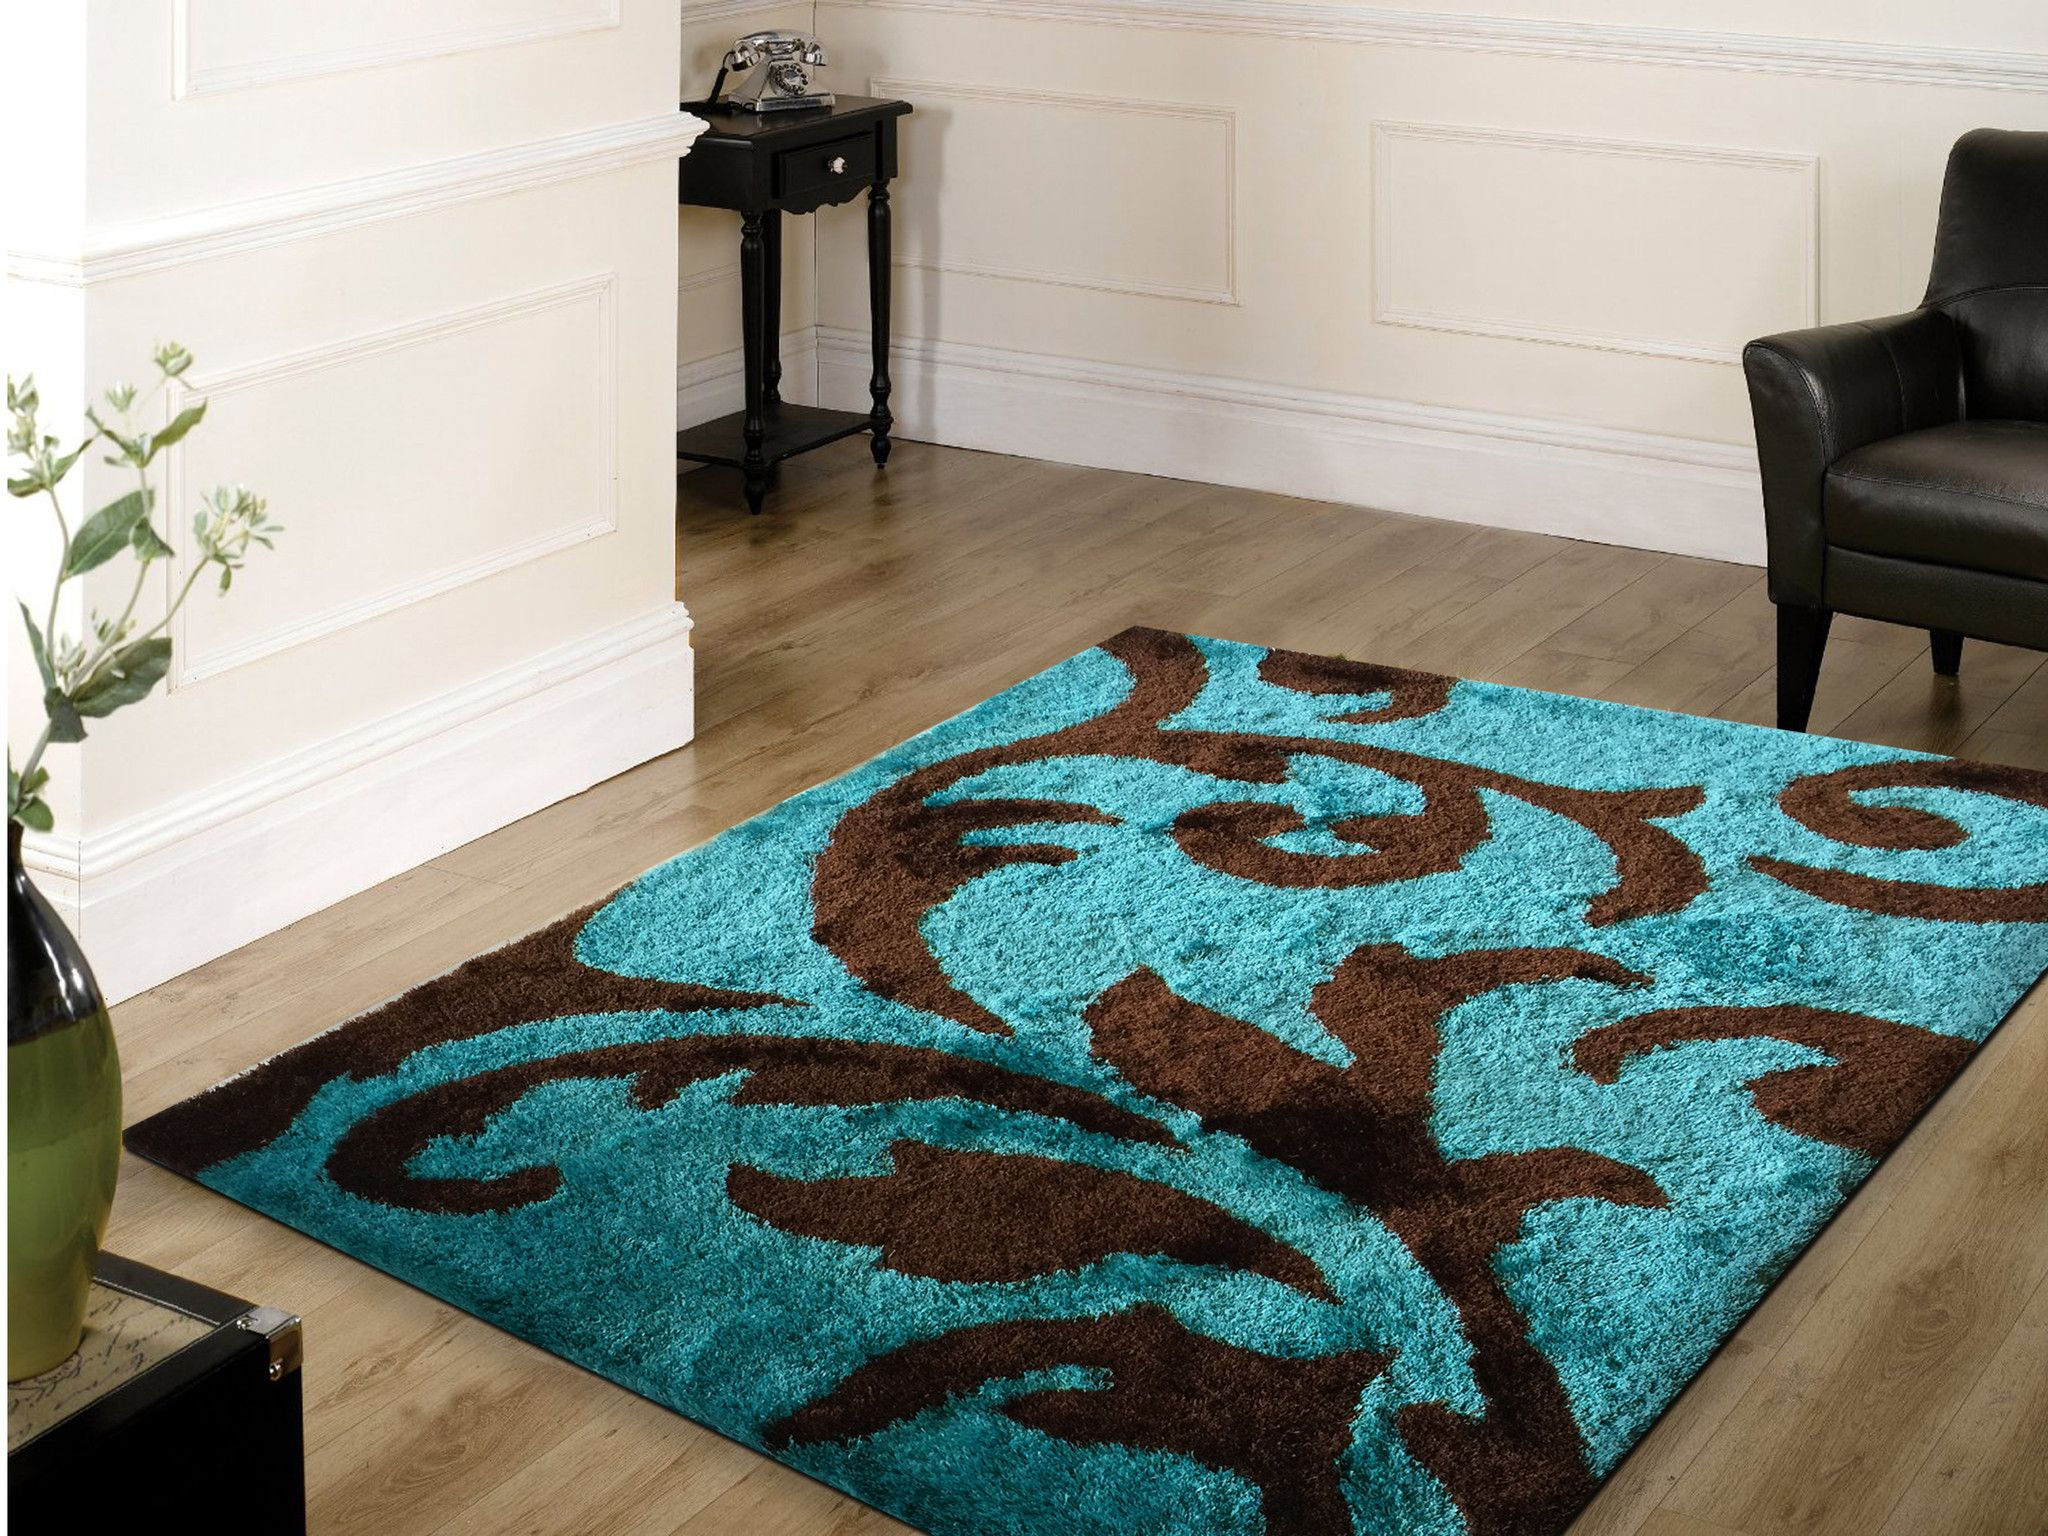 Soft Indoor Bedroom Shag Area Rug Brown with Turquoise | Indoor